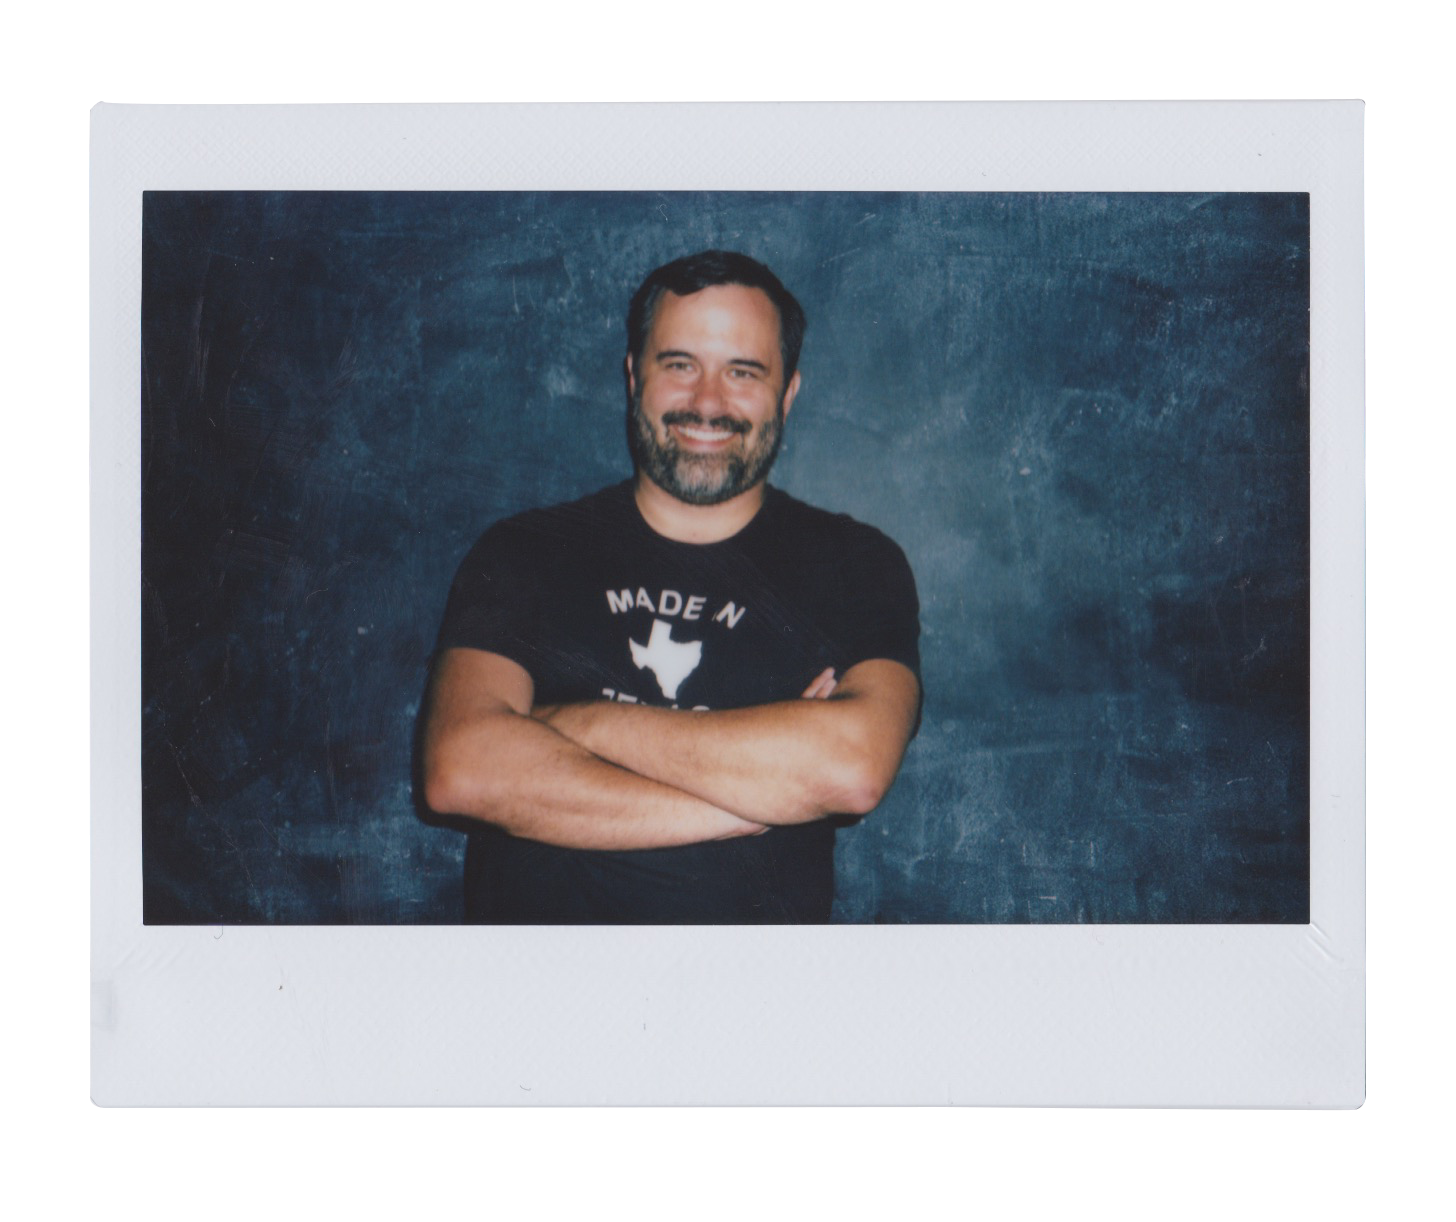 Jeff helped start 5 + 8 because he wanted to make sure he always had the time and freedom to enjoy his friends and family, and to pursue and execute the kind of work that makes him happy. He keeps the stress levels low and reminds us to never take ourselves too seriously.